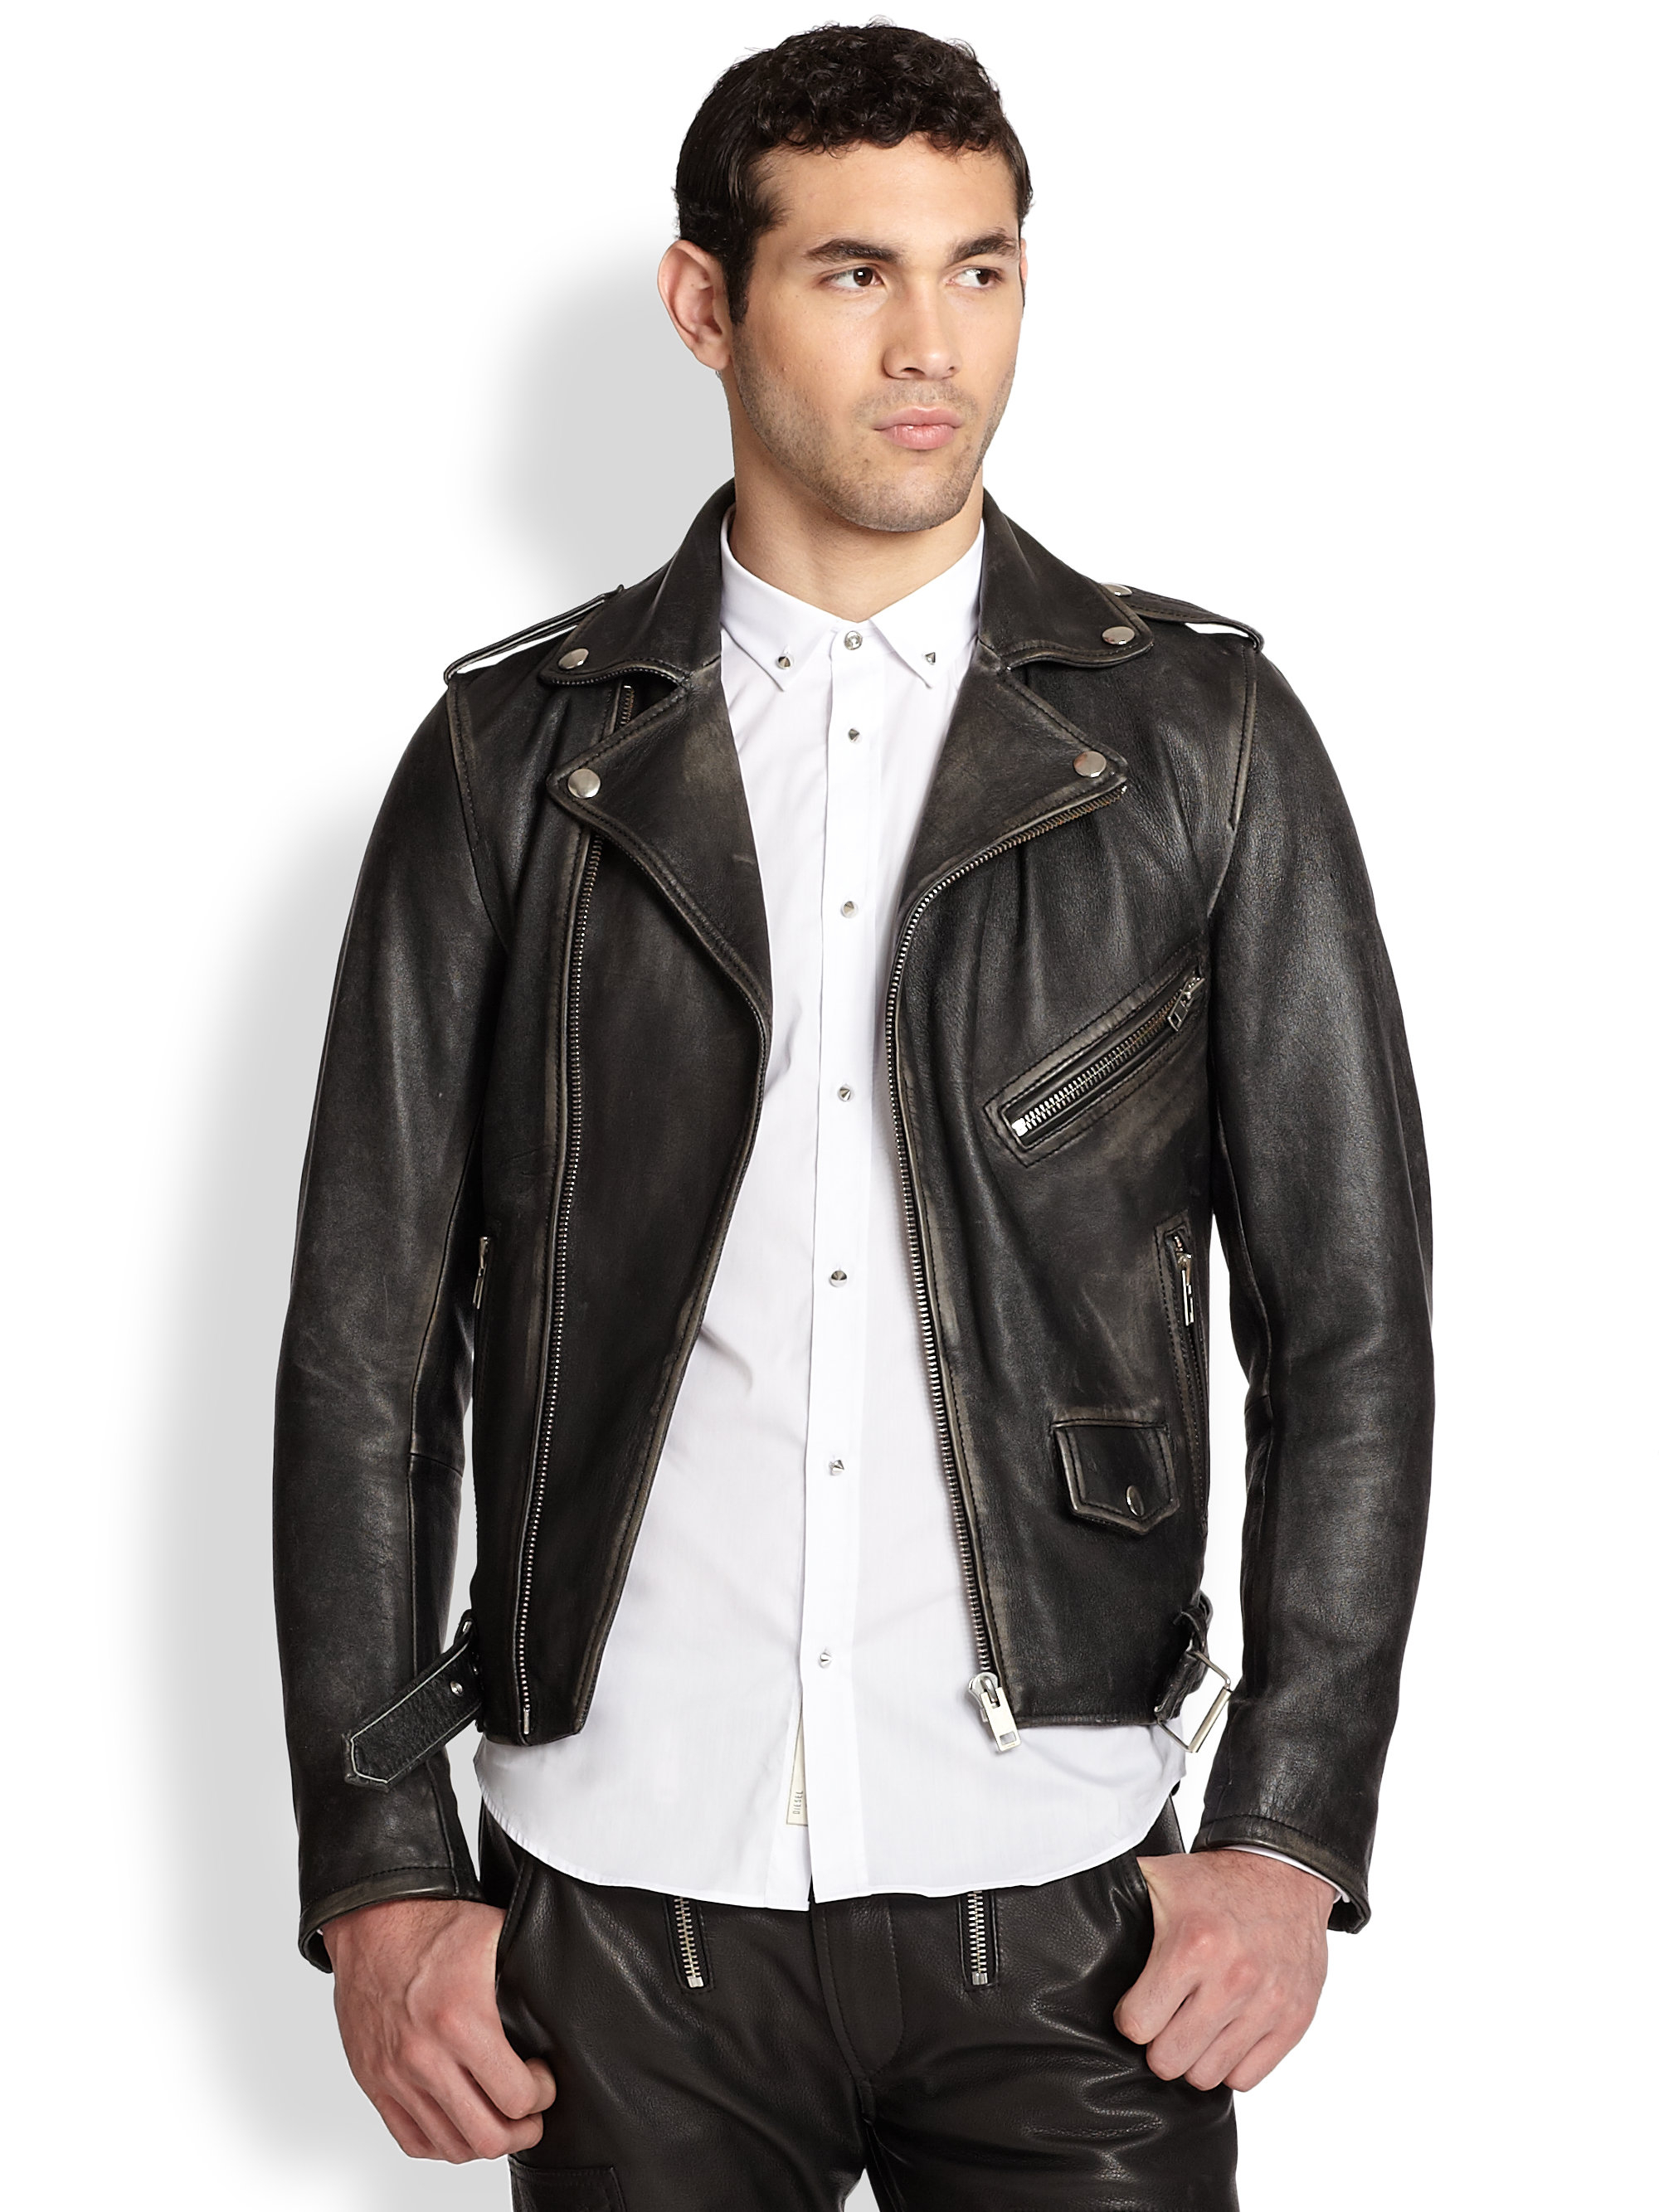 Are leather jackets in fashion for men 55